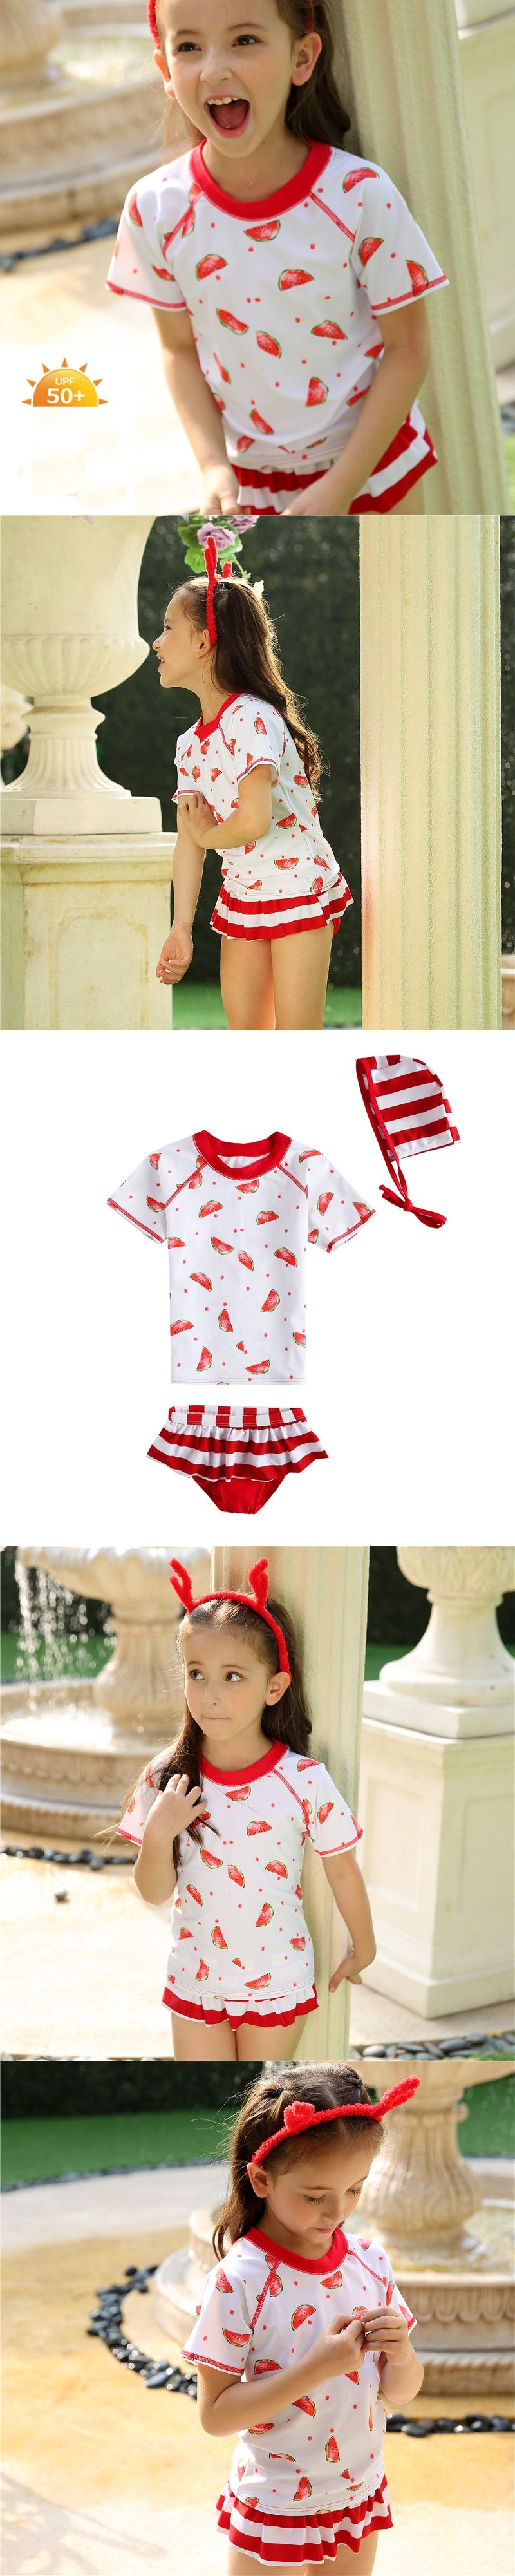 2017 Summer Baby Girls Swimsuits Cute Kids Bathing Suits Watermelon